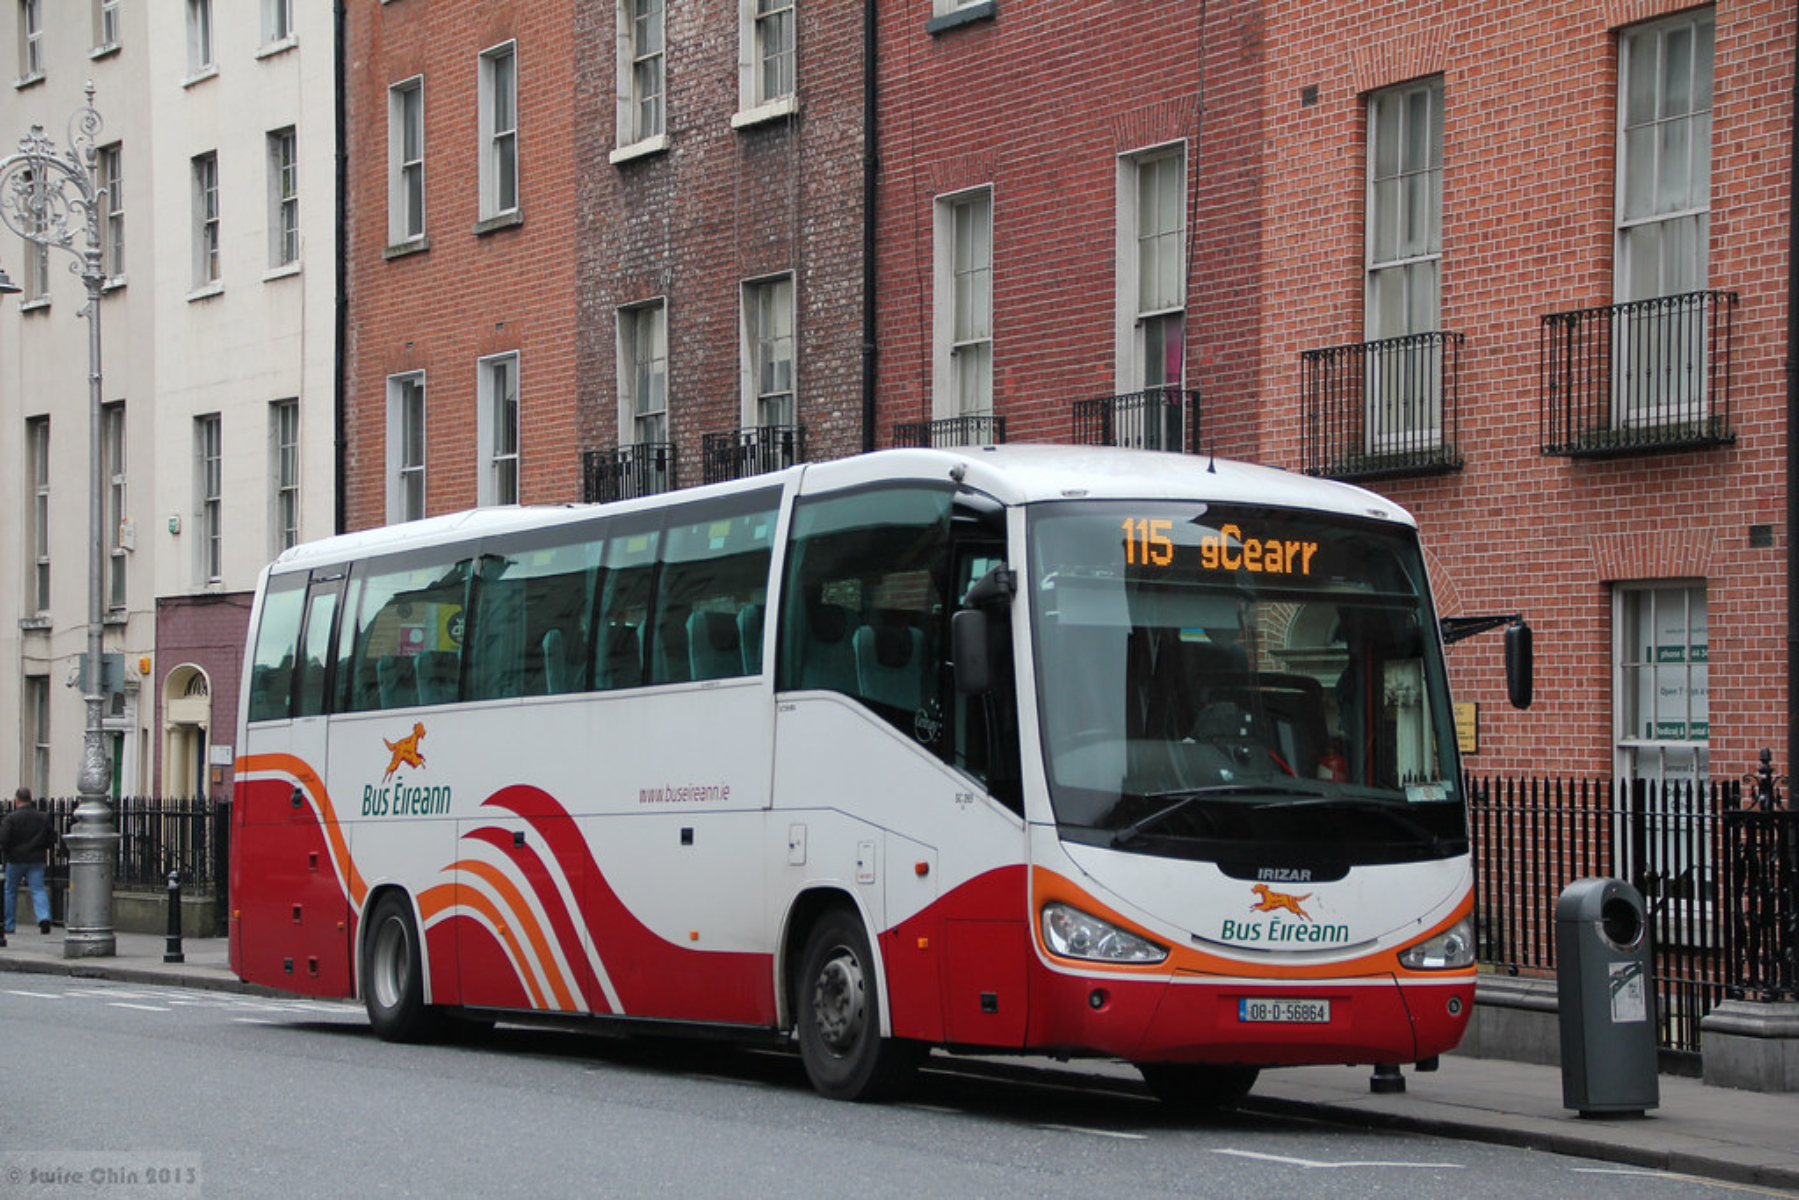 €1 Promotional Fare With New TFI Go App